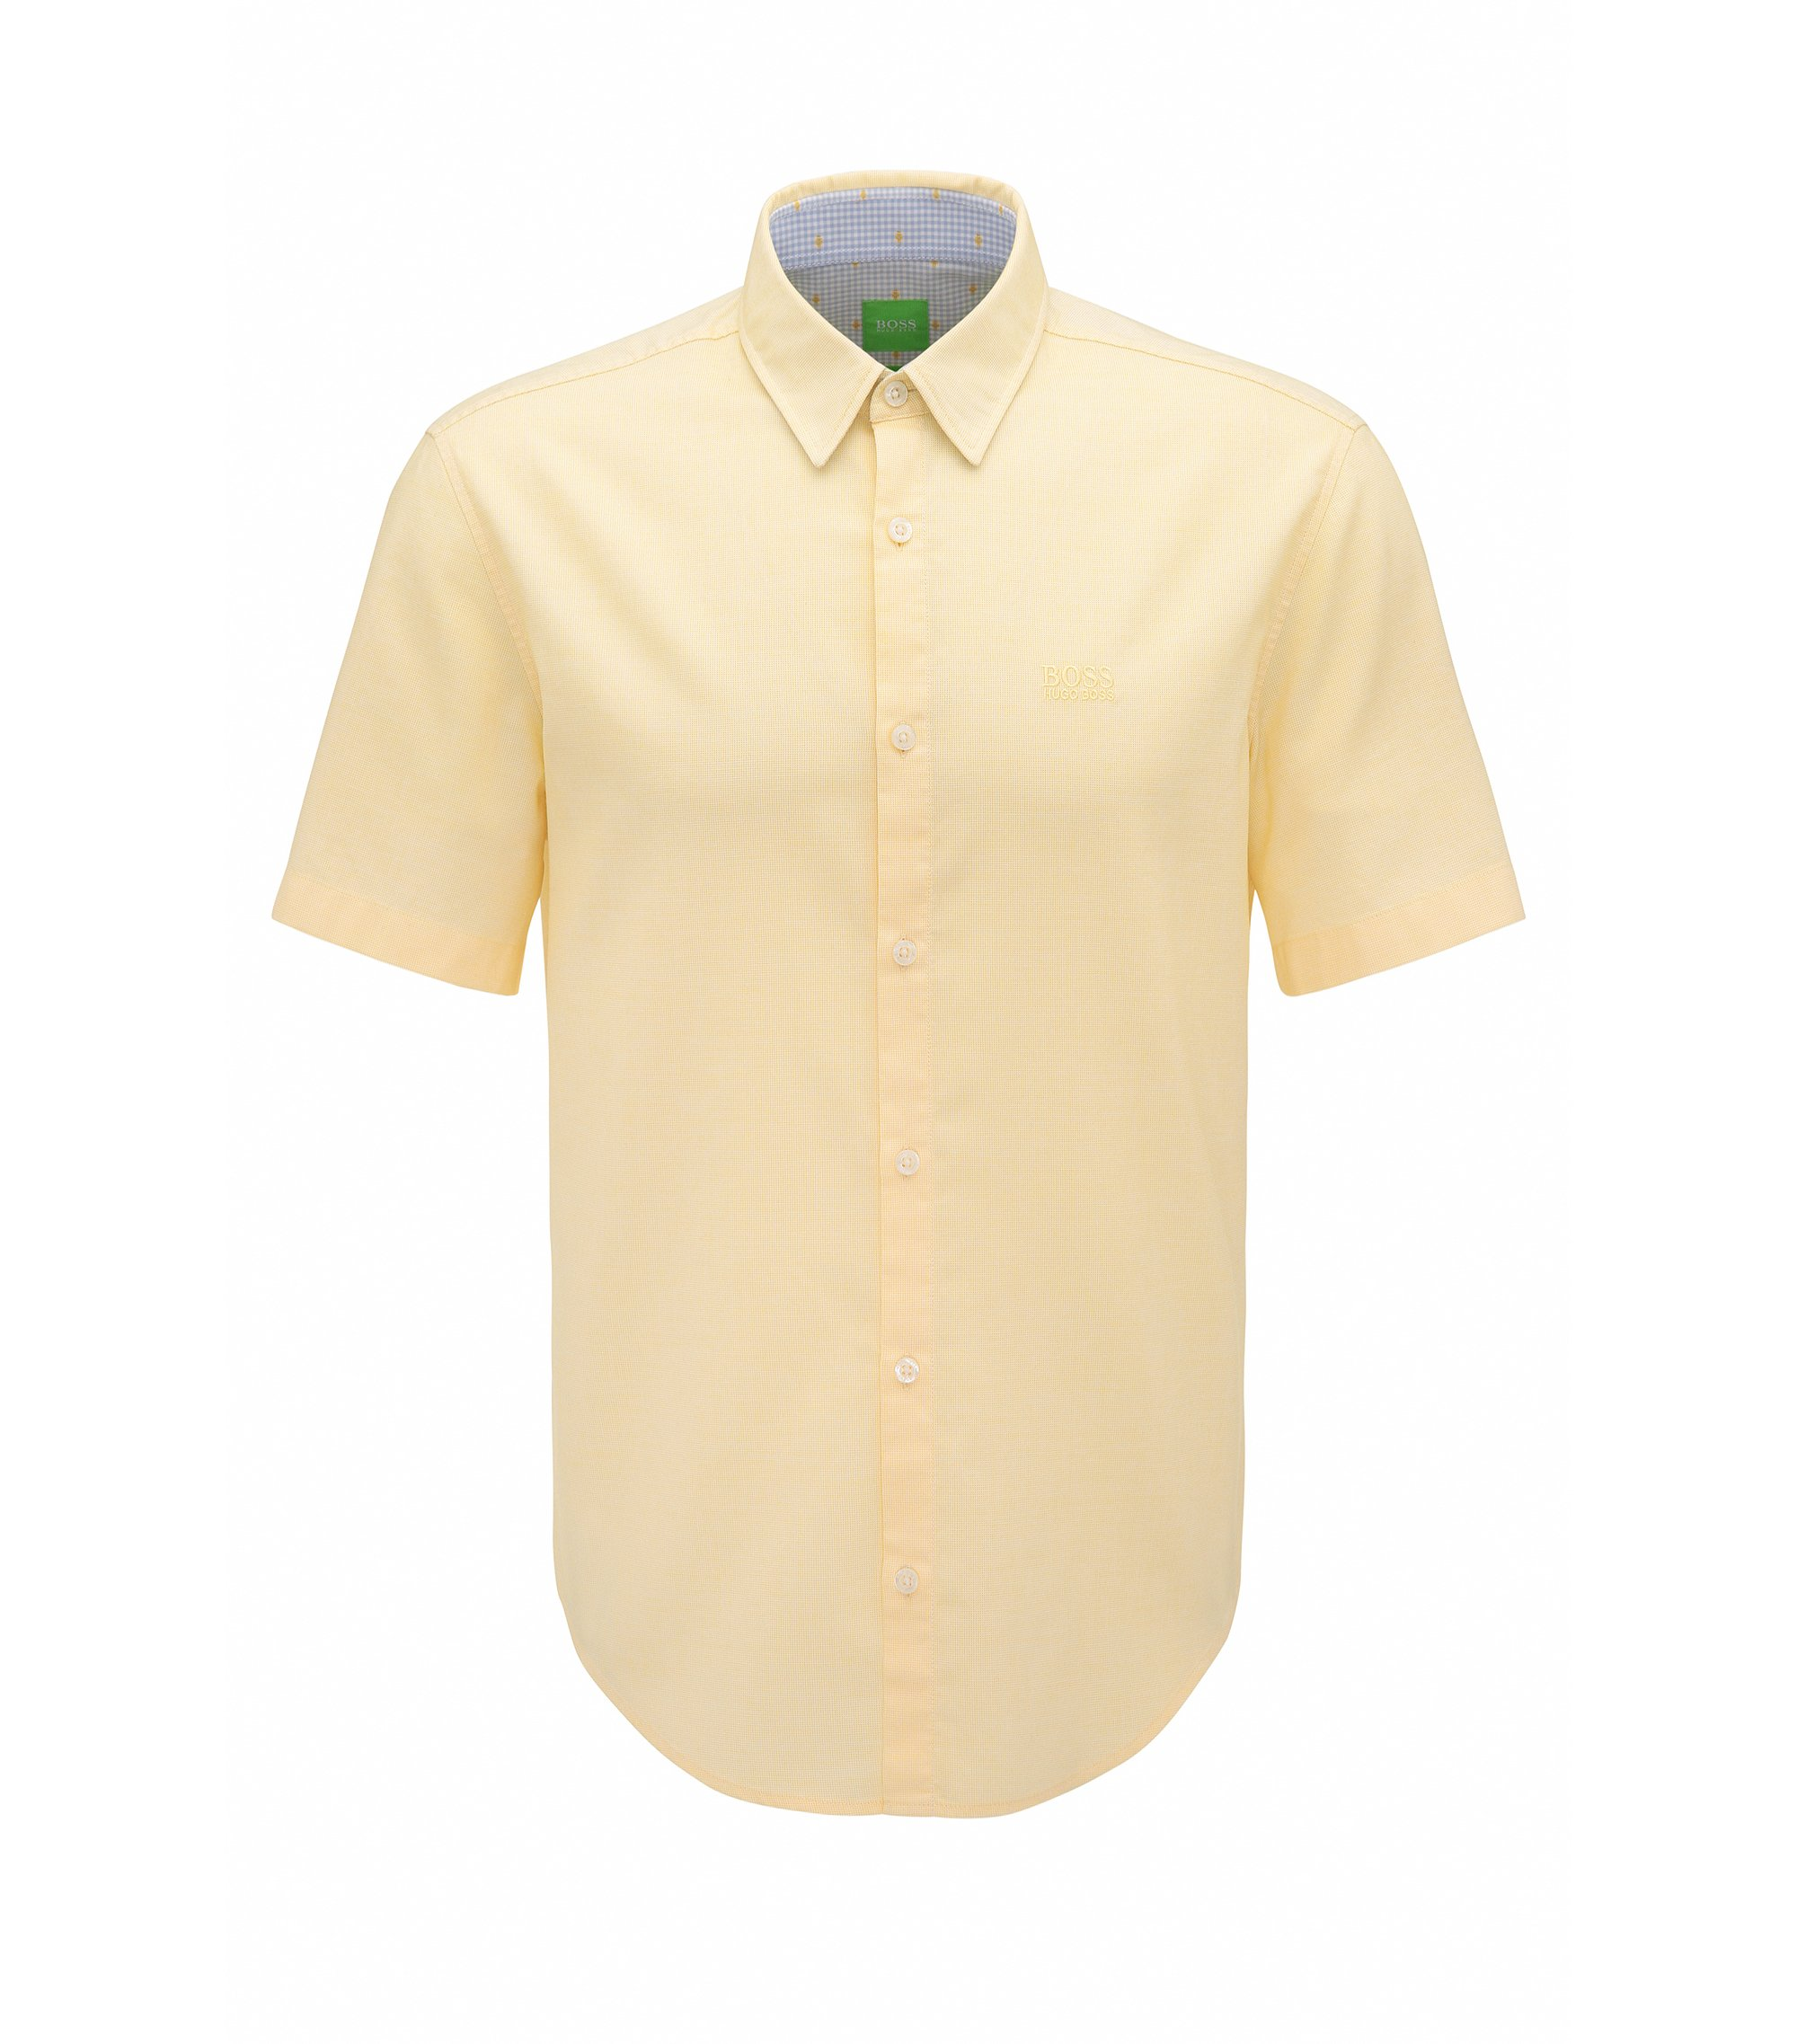 Cotton Sport Shirt, Regular Fit | C-Busterino, Yellow